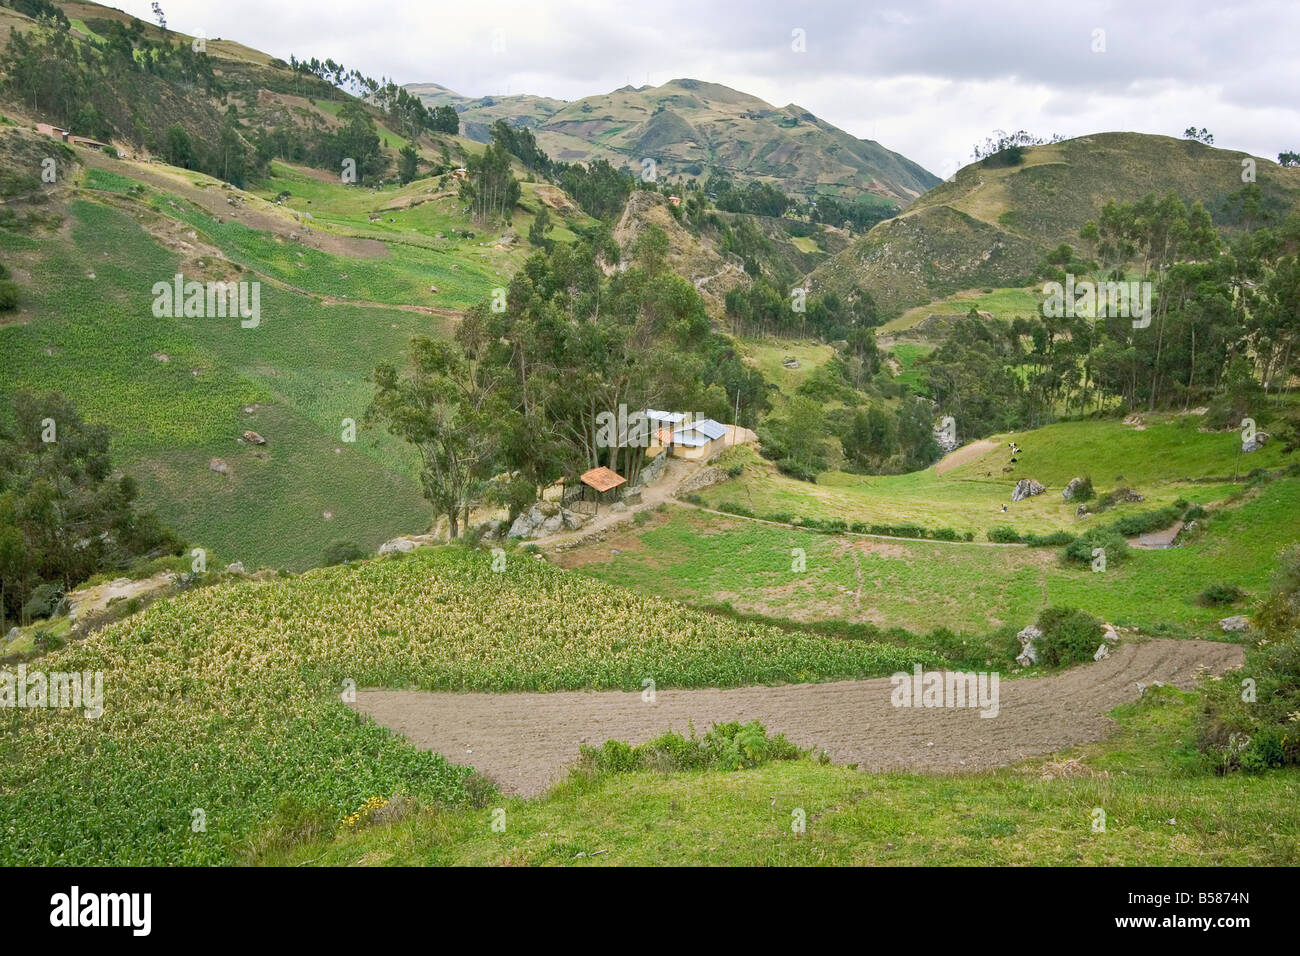 Maize fields and farm of indigenous Canari people, Ingapirca, Canar Province, Ecuador - Stock Image